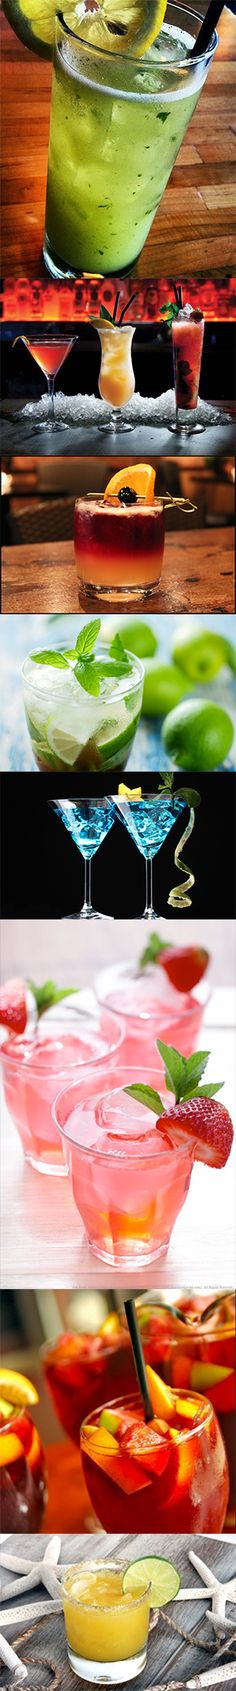 10 Famous Bartender Recipes – The Famous Bartender Recipes From The Best Bartenders In The World !